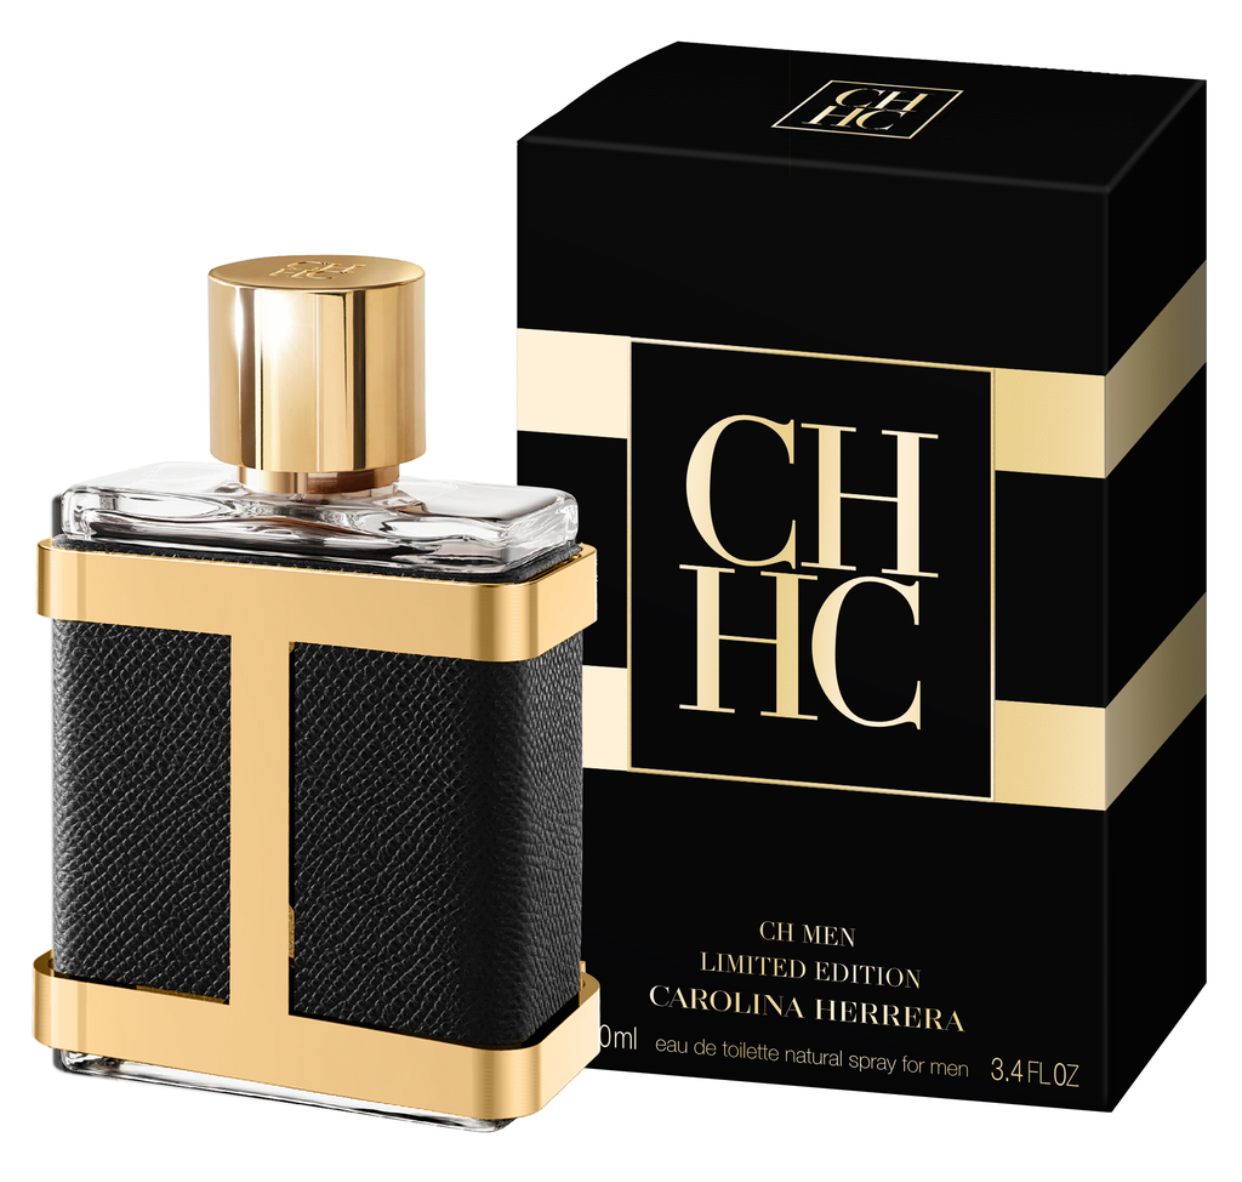 Carolina Herrera CH Limited Edition 3.4oz